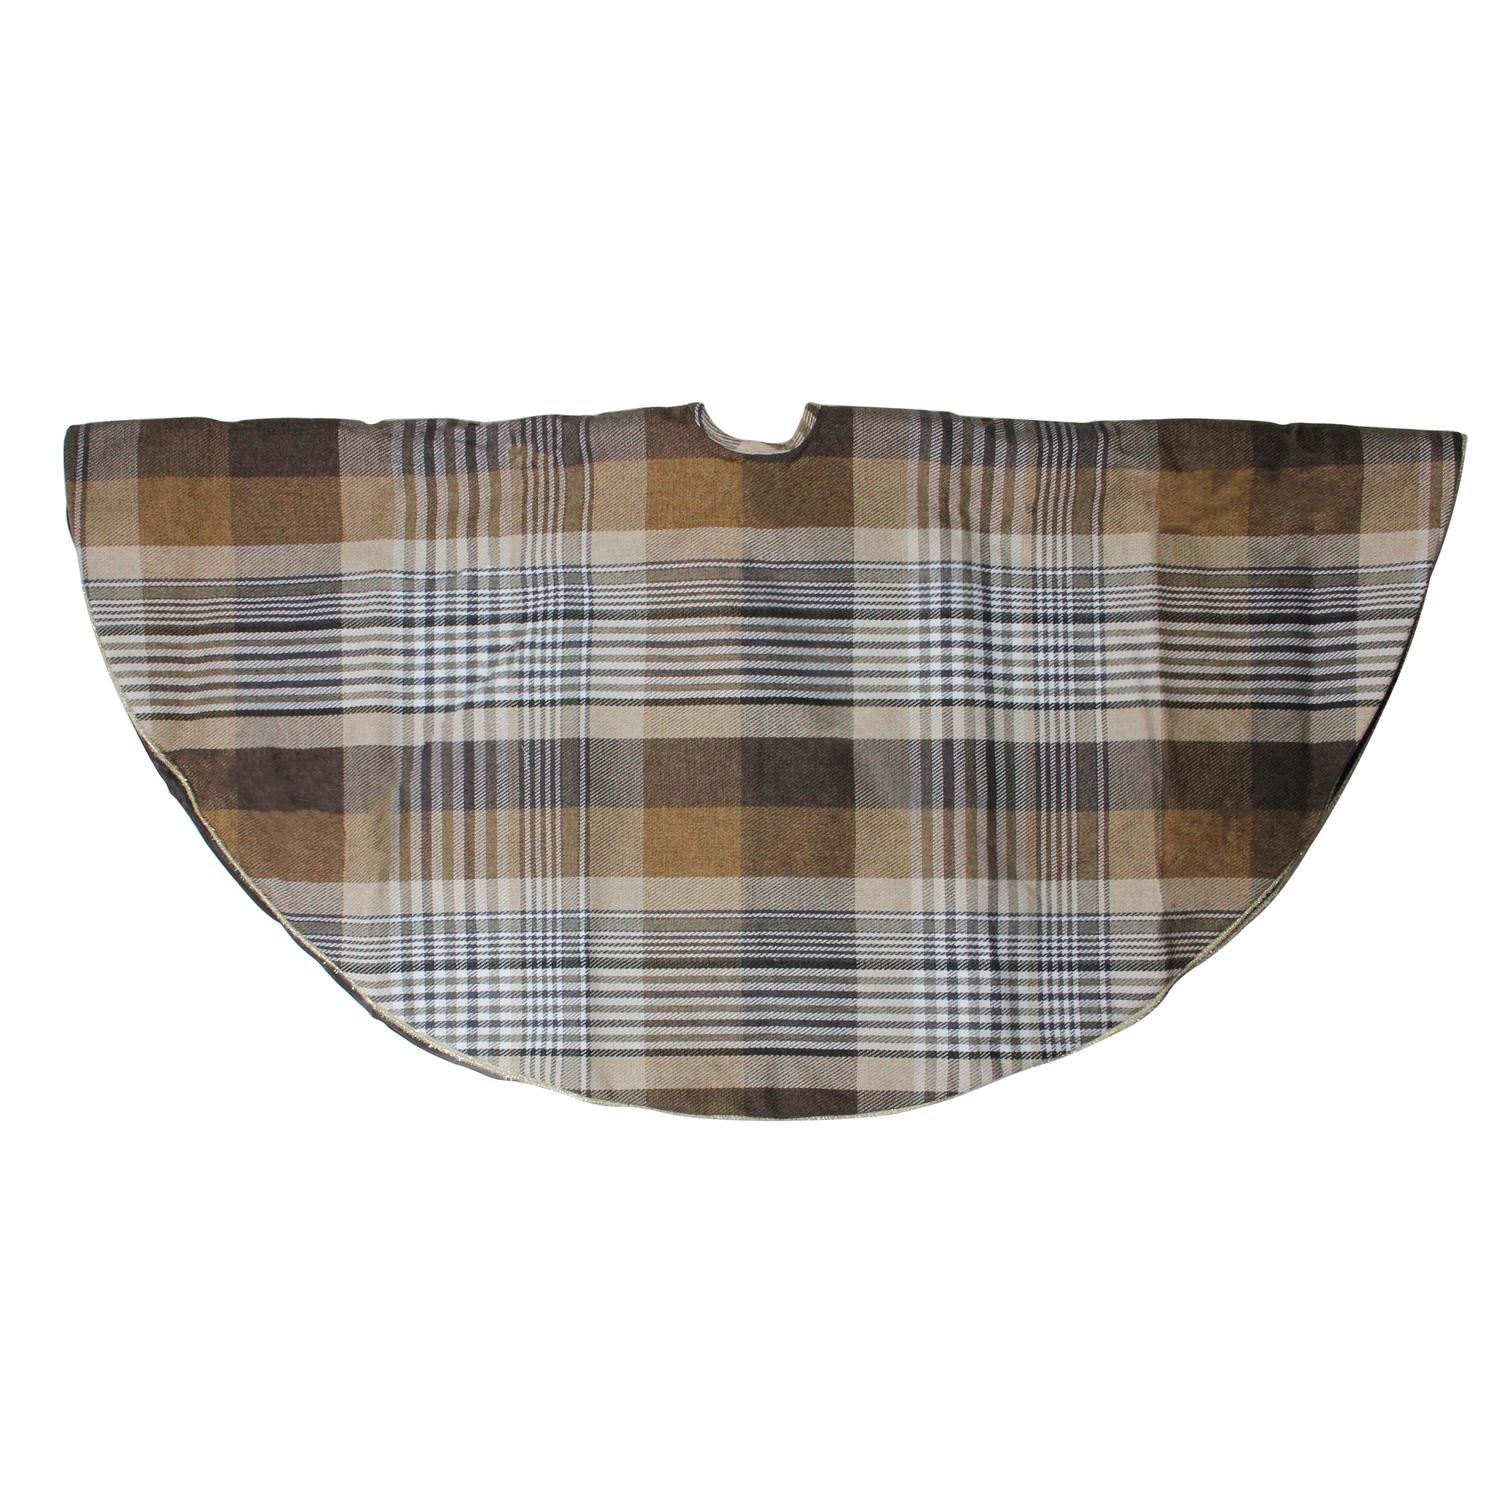 48 Brown Plaid Rustic Woodland Christmas Tree Skirt With Gold Trim Walmart Com Walmart Com